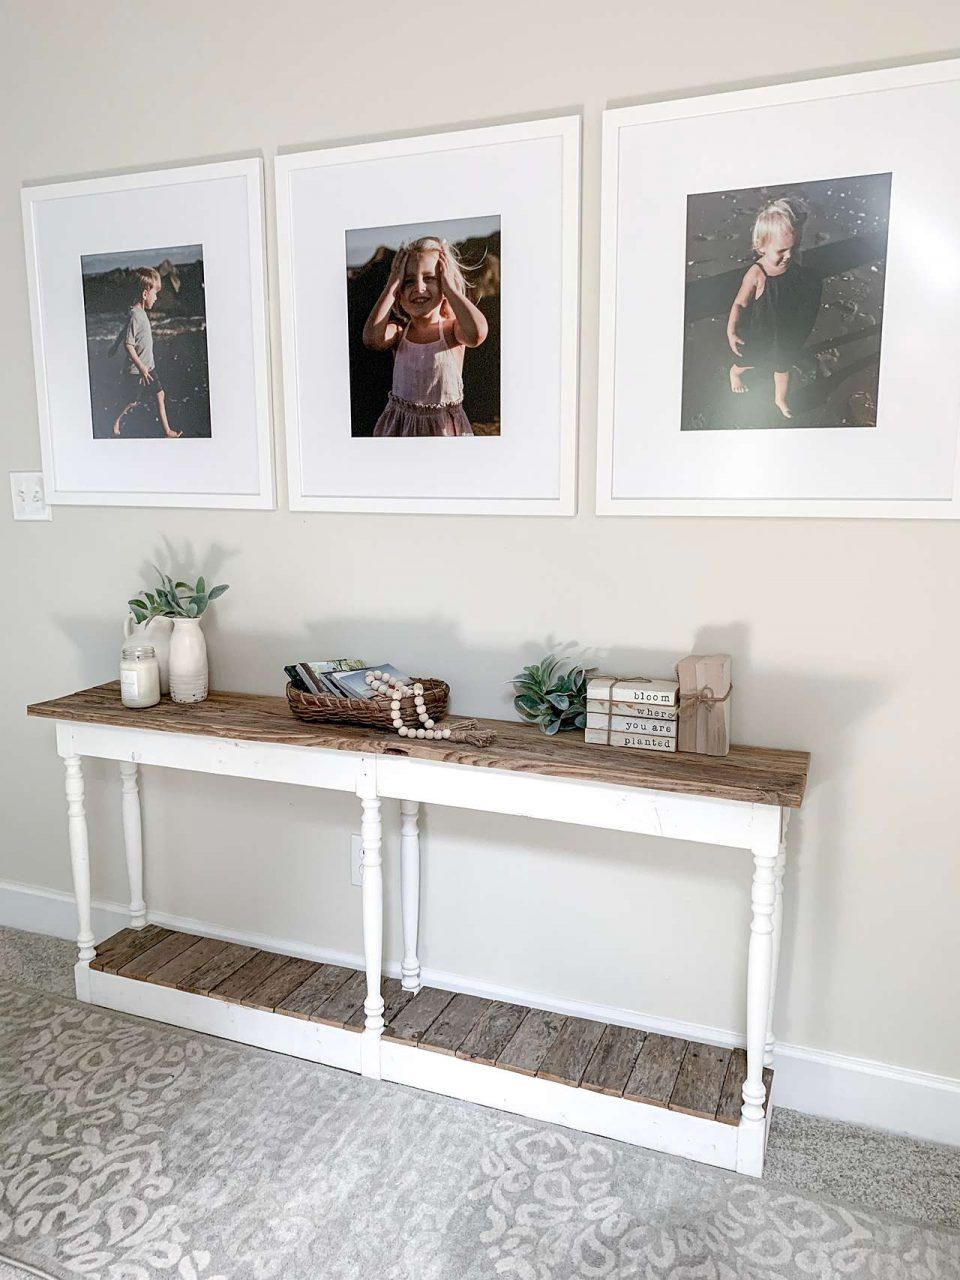 three matted white picture frames